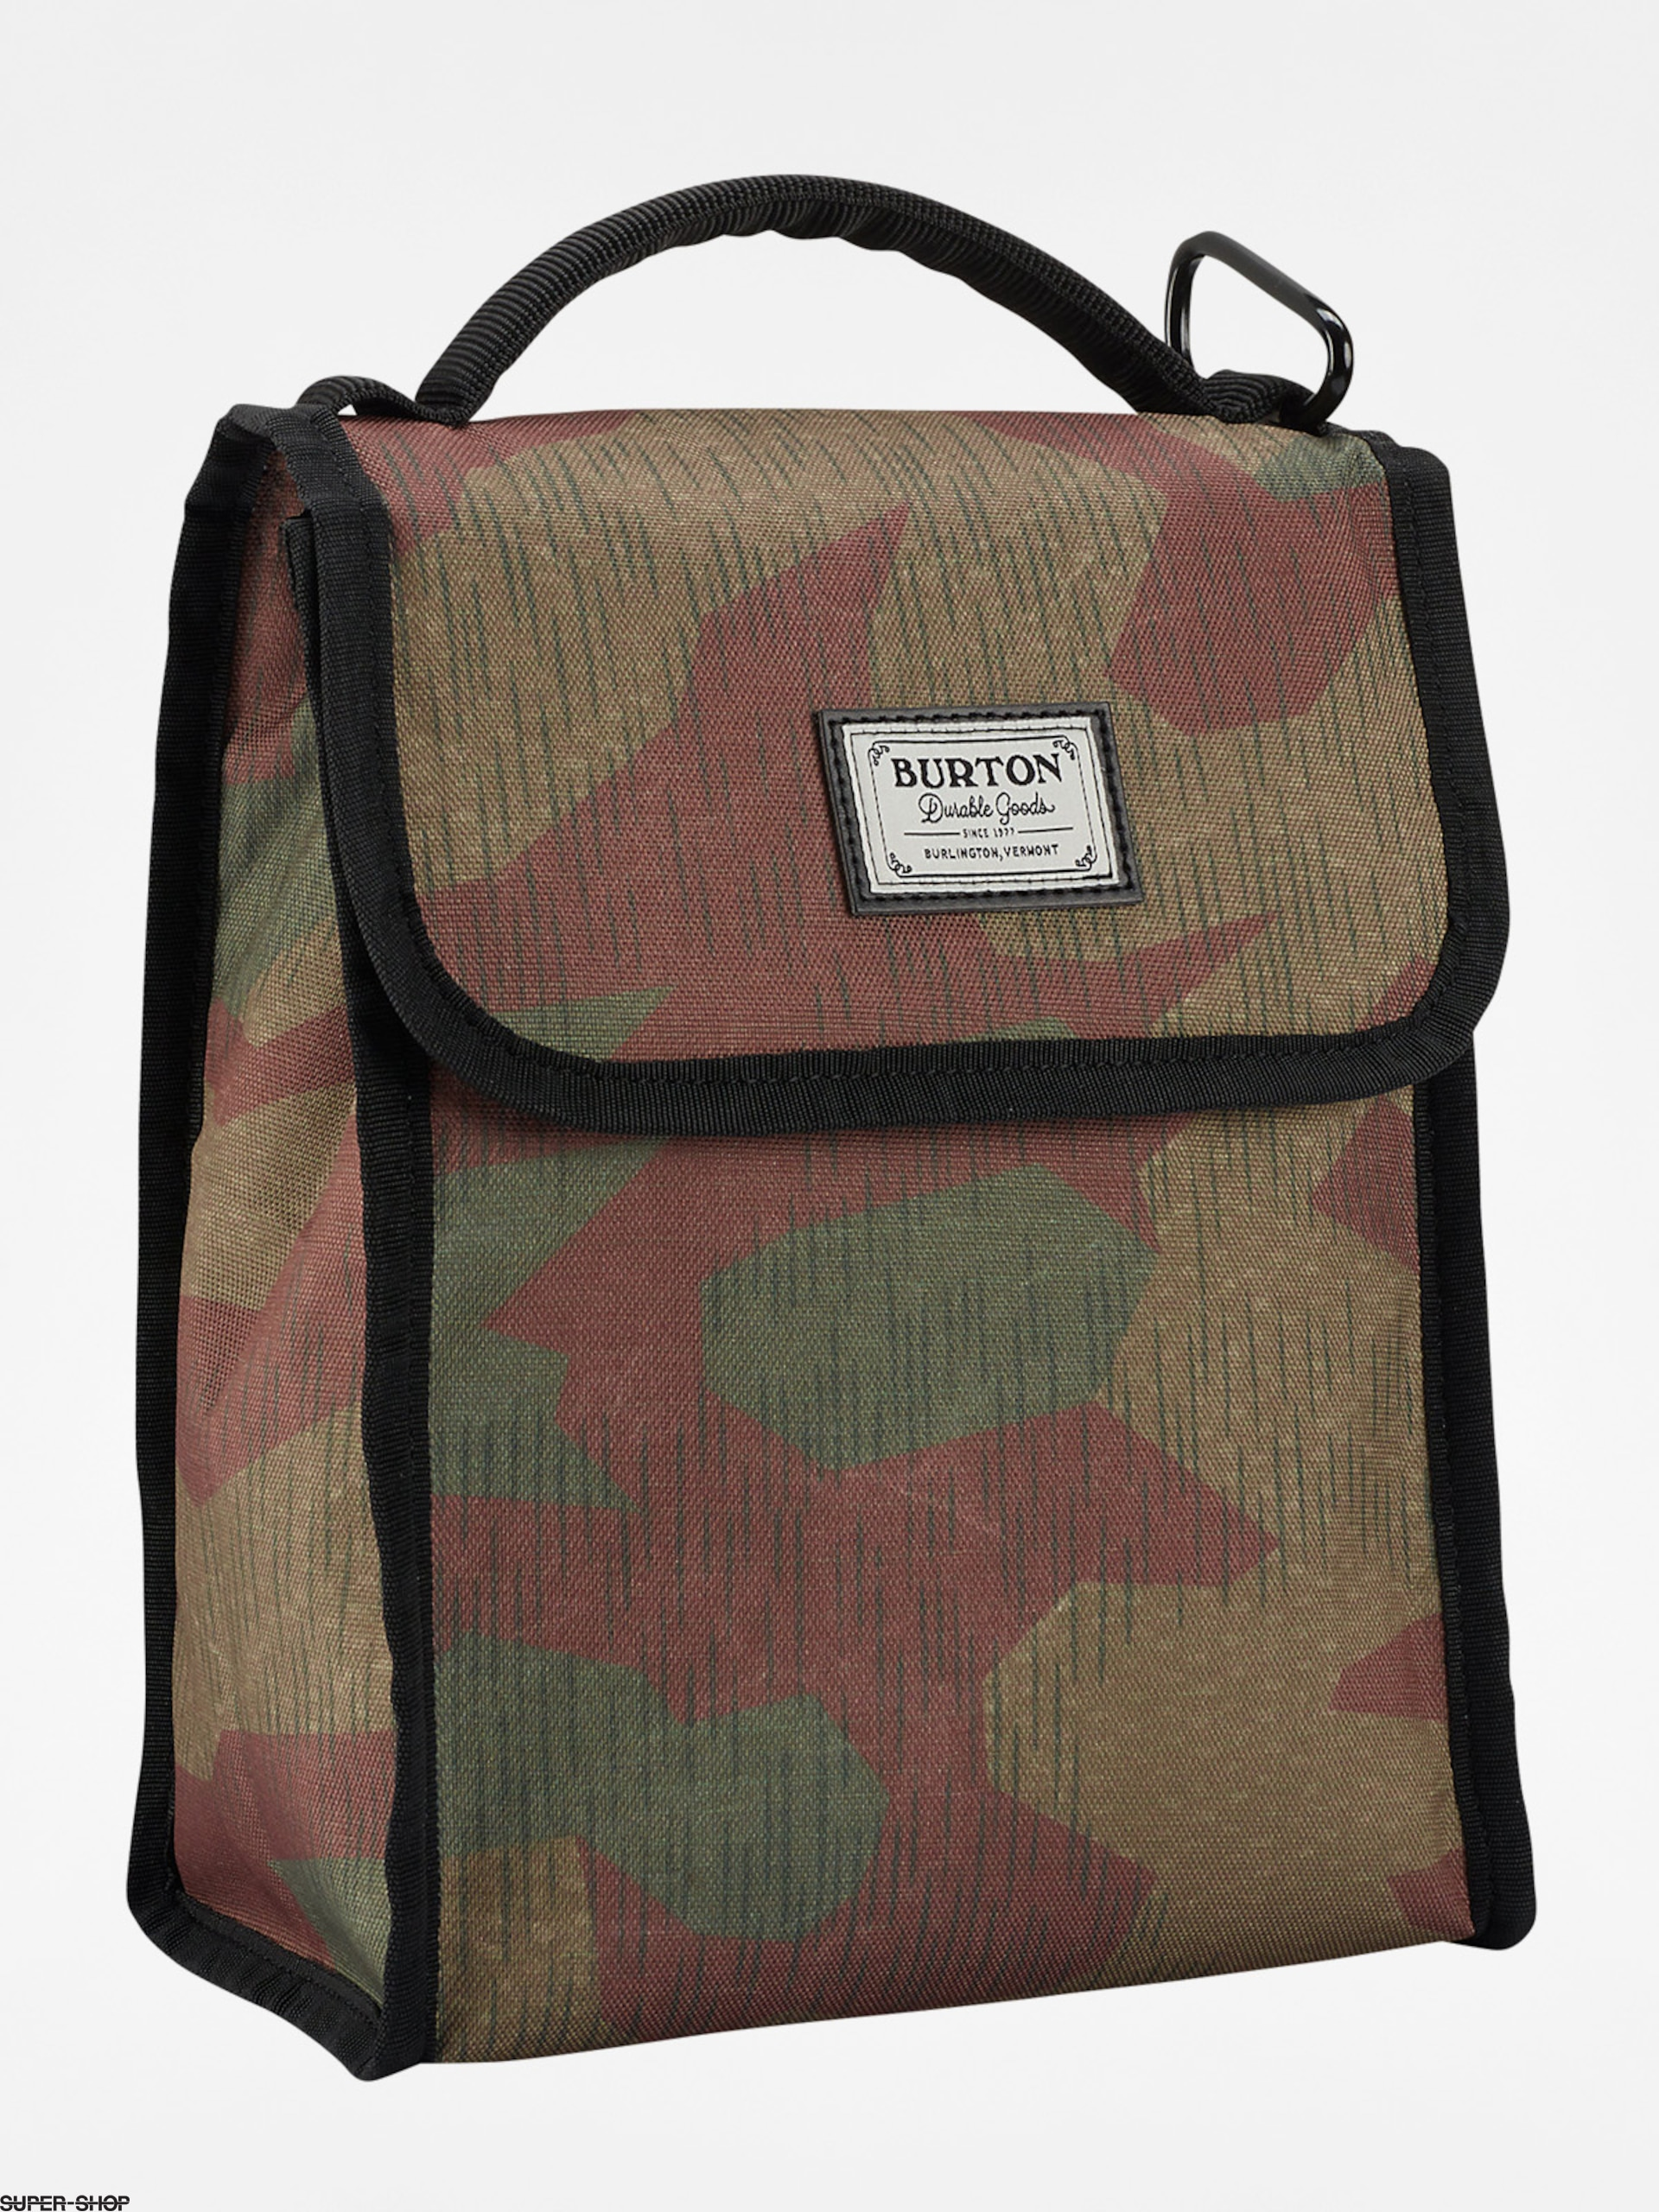 Burton Lunch Sack (splinter camo print)